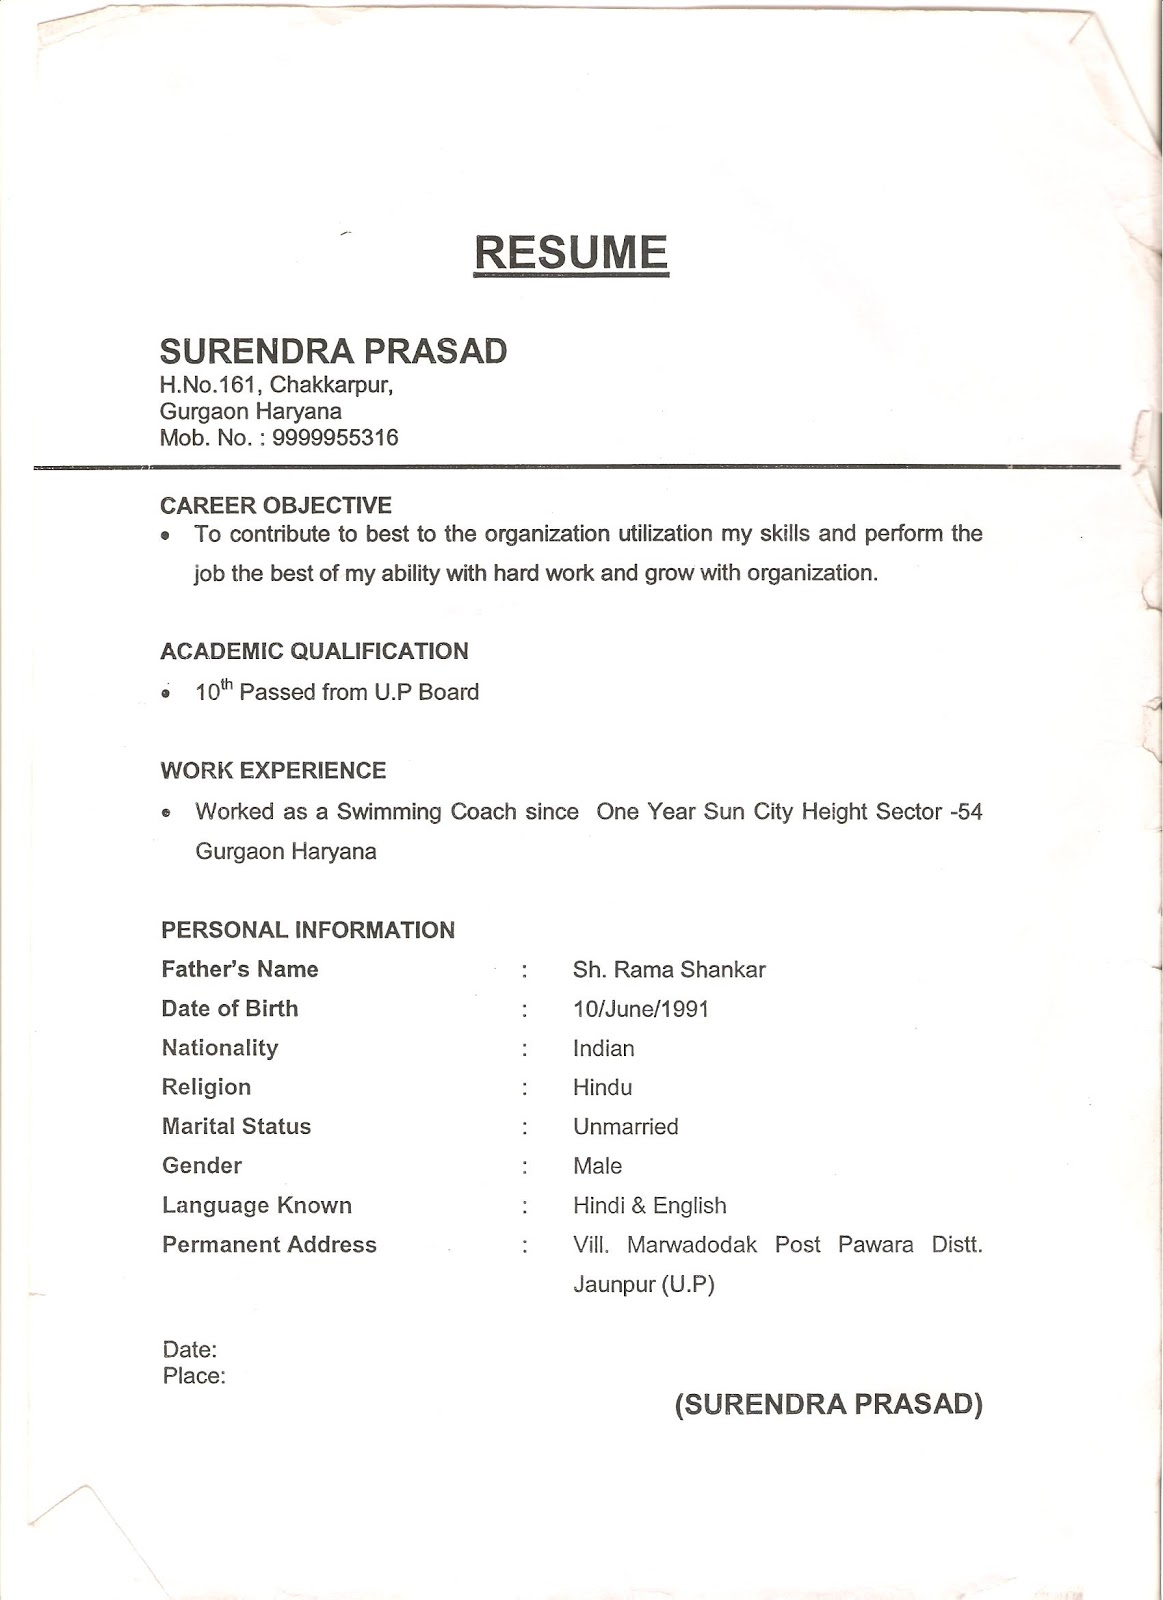 resume office boypaintryreceptionist etc - Resumes For Office Jobs